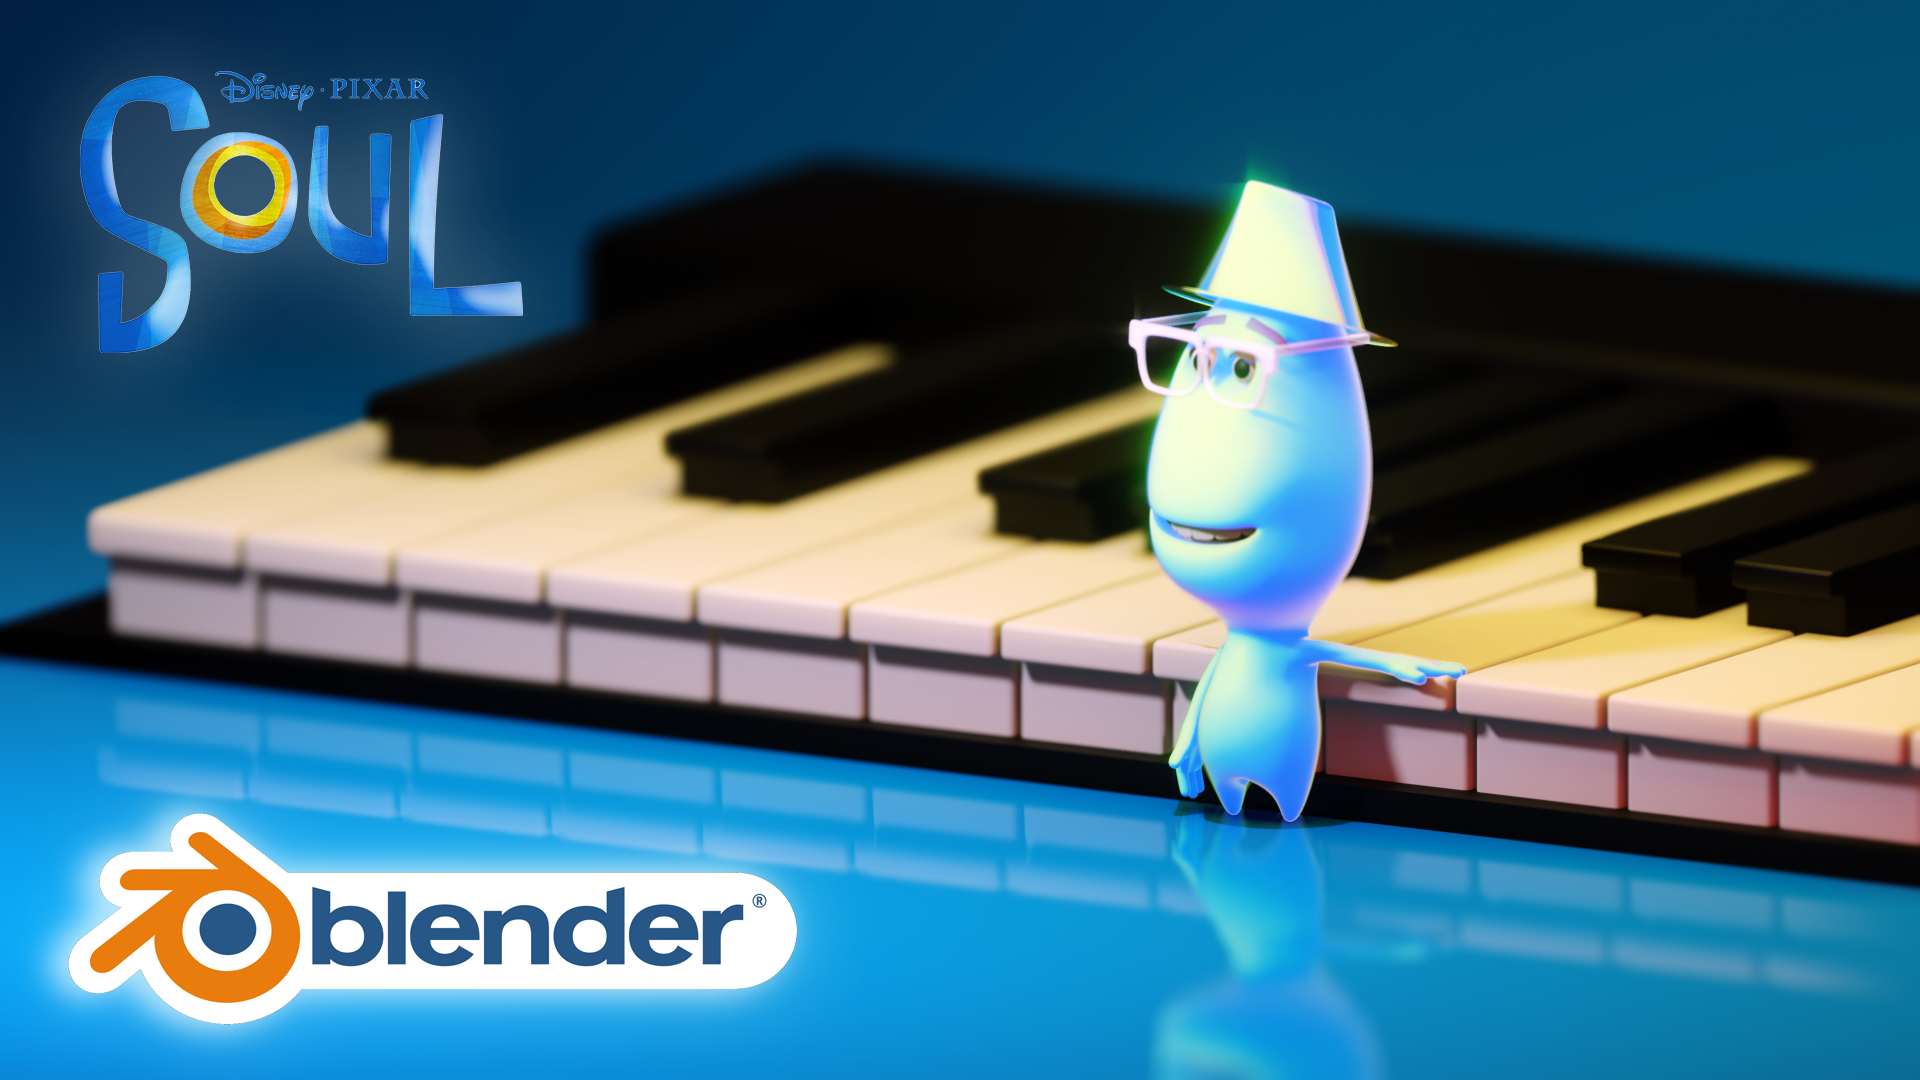 3D Character Movie Pixar Style Blender Academy Course